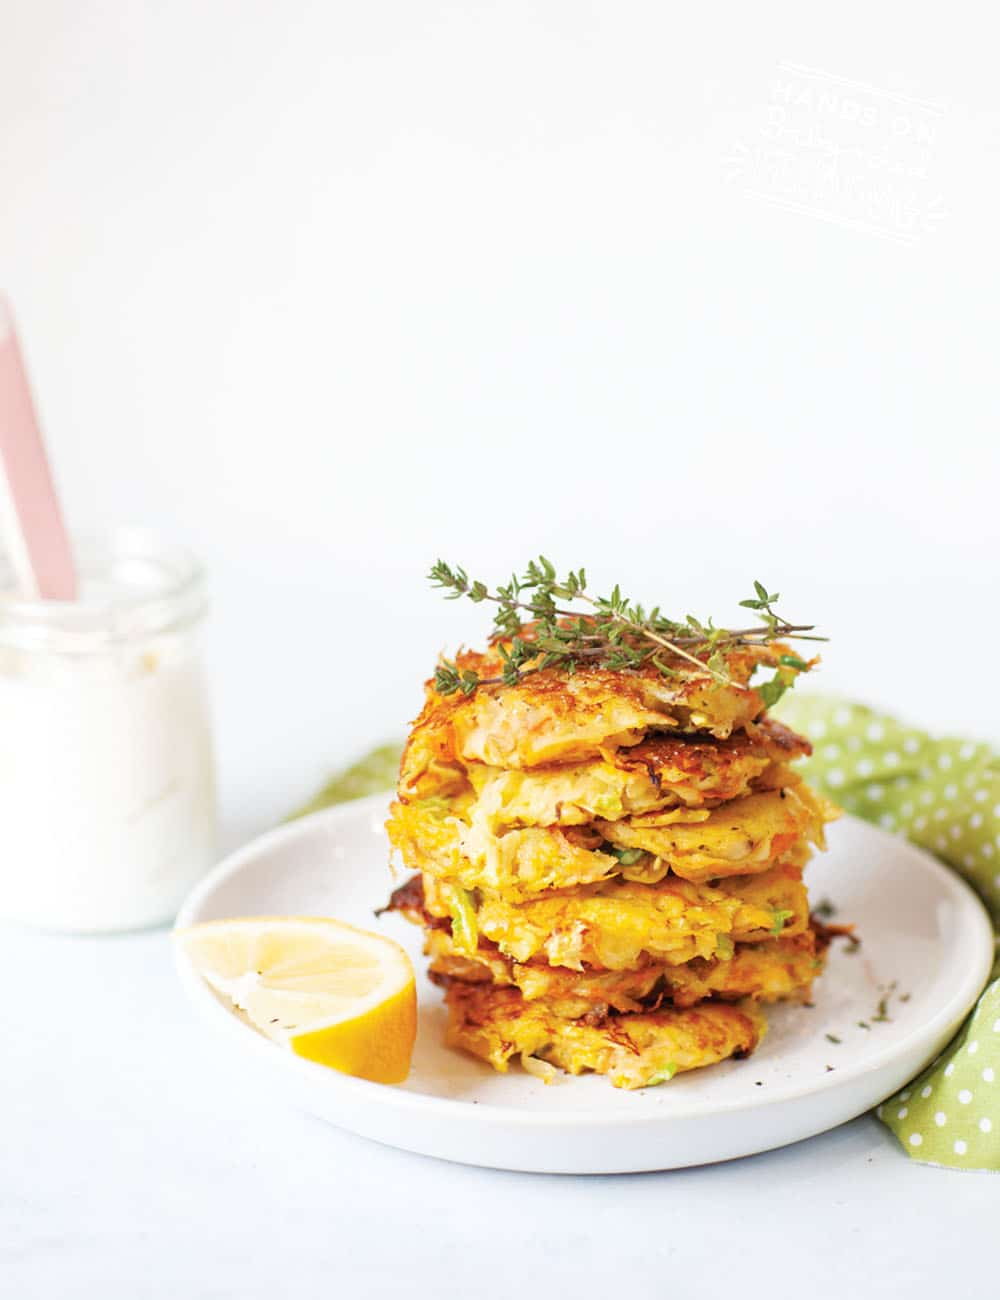 Baby-Led-Feeding-Potato-Carrot-and-Cabbage-Hash-Browns-Recipe-Images